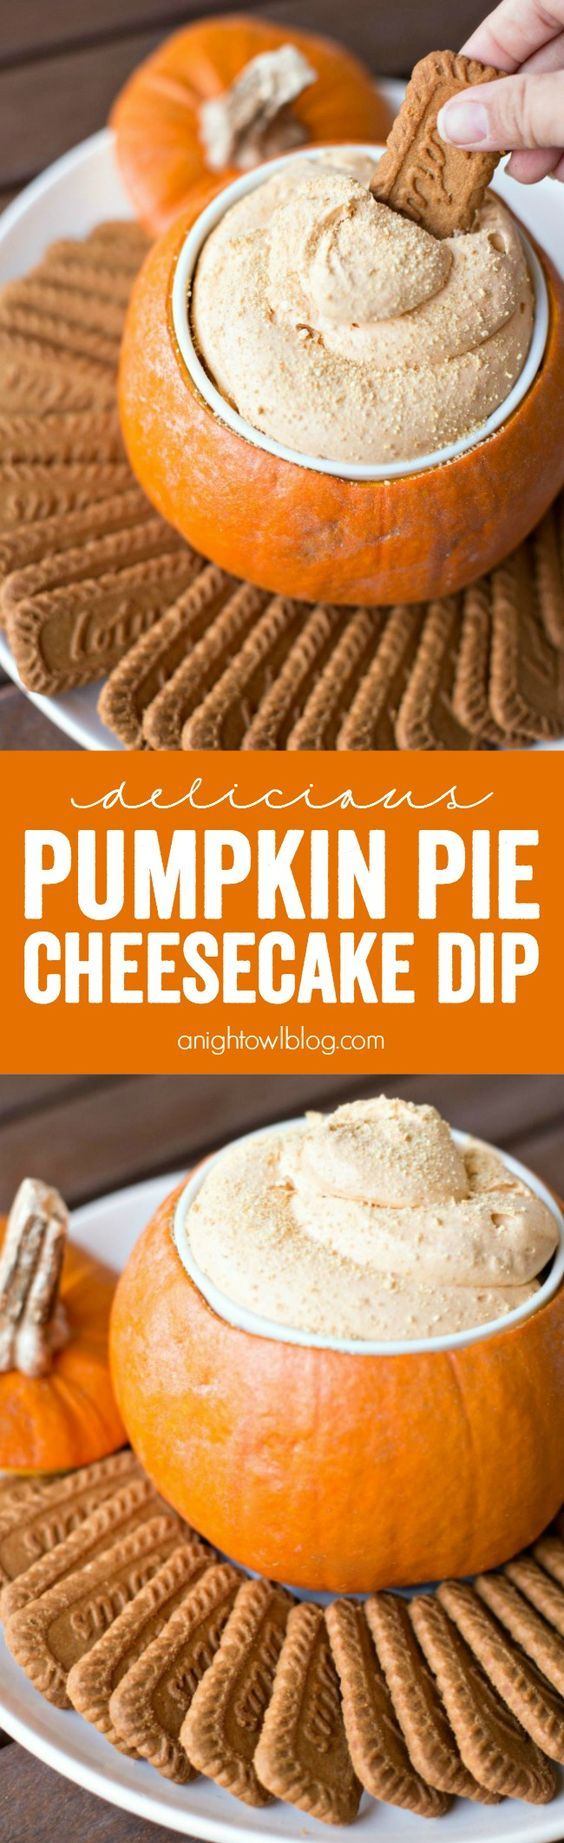 Bridal Shower dip for a fall party